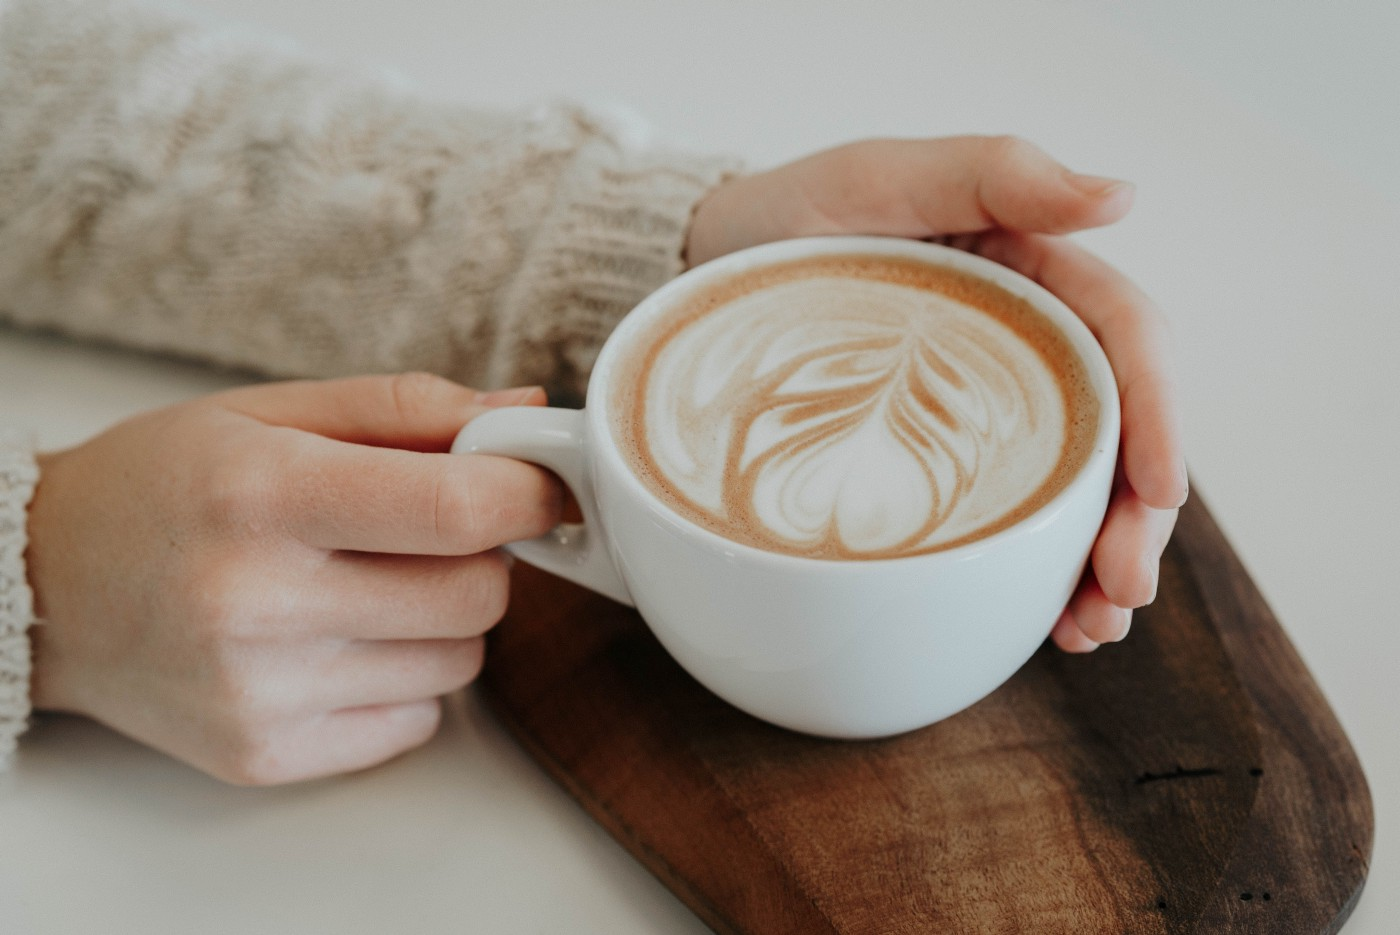 Woman holding a latte cup